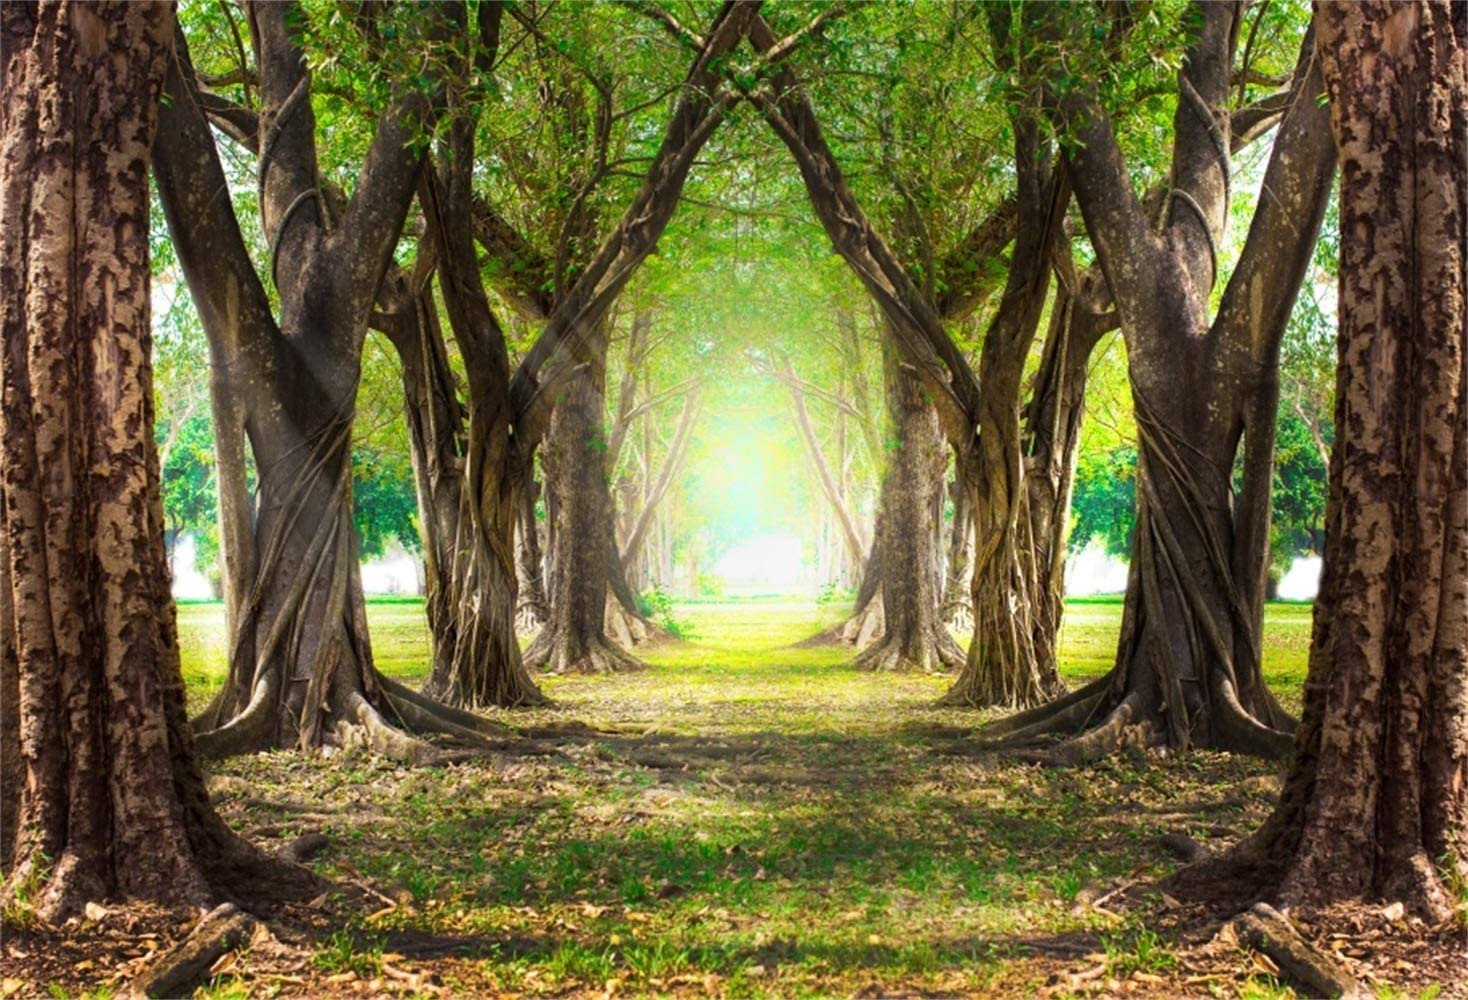 Laeacco Spring Line of Trees Passage 7x5ft Vinyl Photography Background Vibrant Old Trees Green Grassland Spring Scenic Backdrop Wedding Shoot Landscape Wallpaper Studio Props